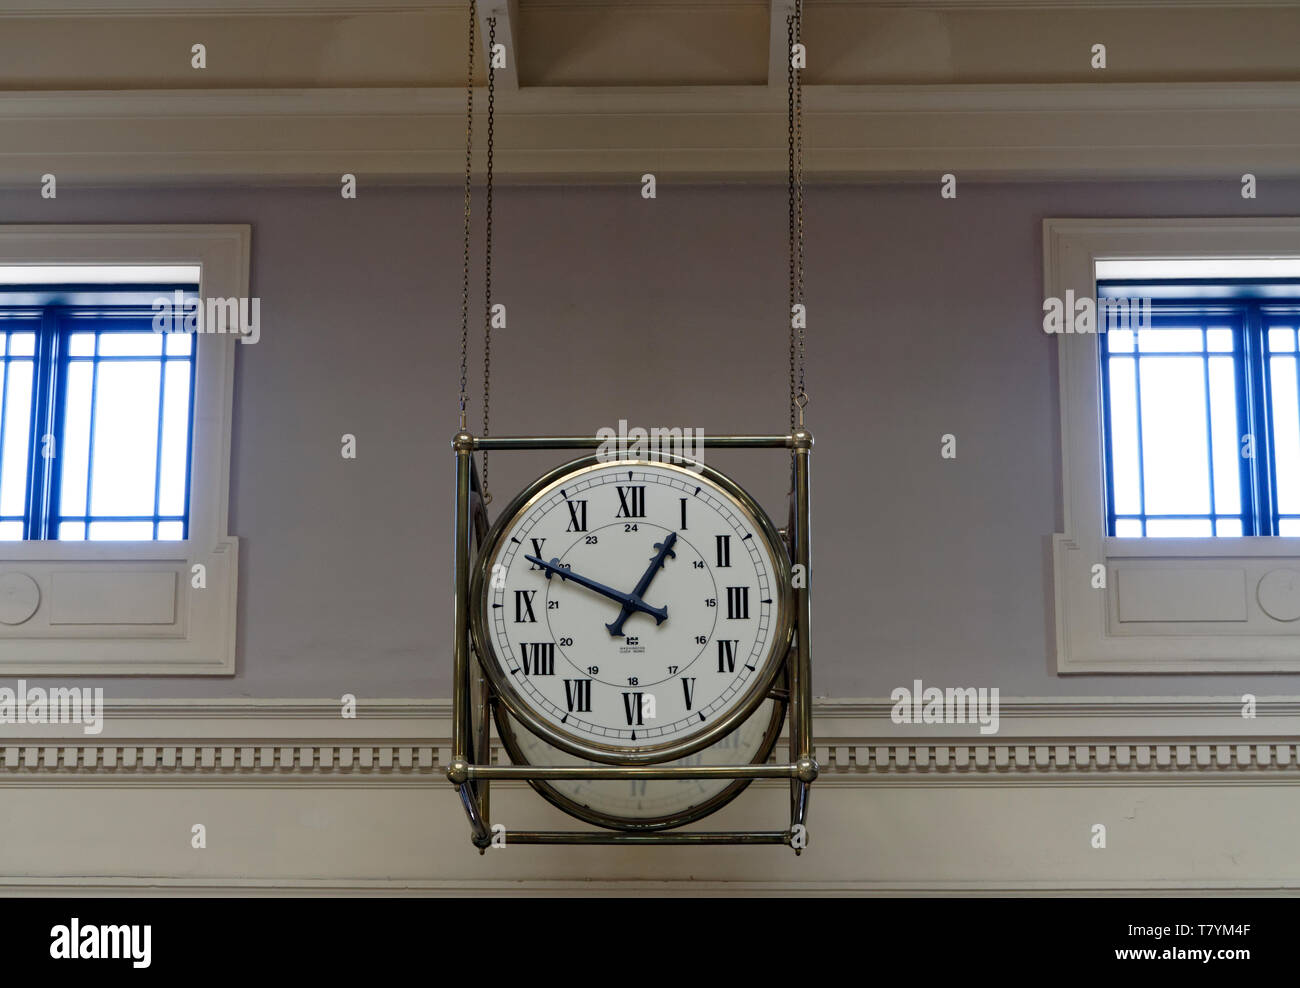 Suspended analog clock with Roman numerals in the Pacific Central train and bus station, Vancouver, BC, Canada - Stock Image